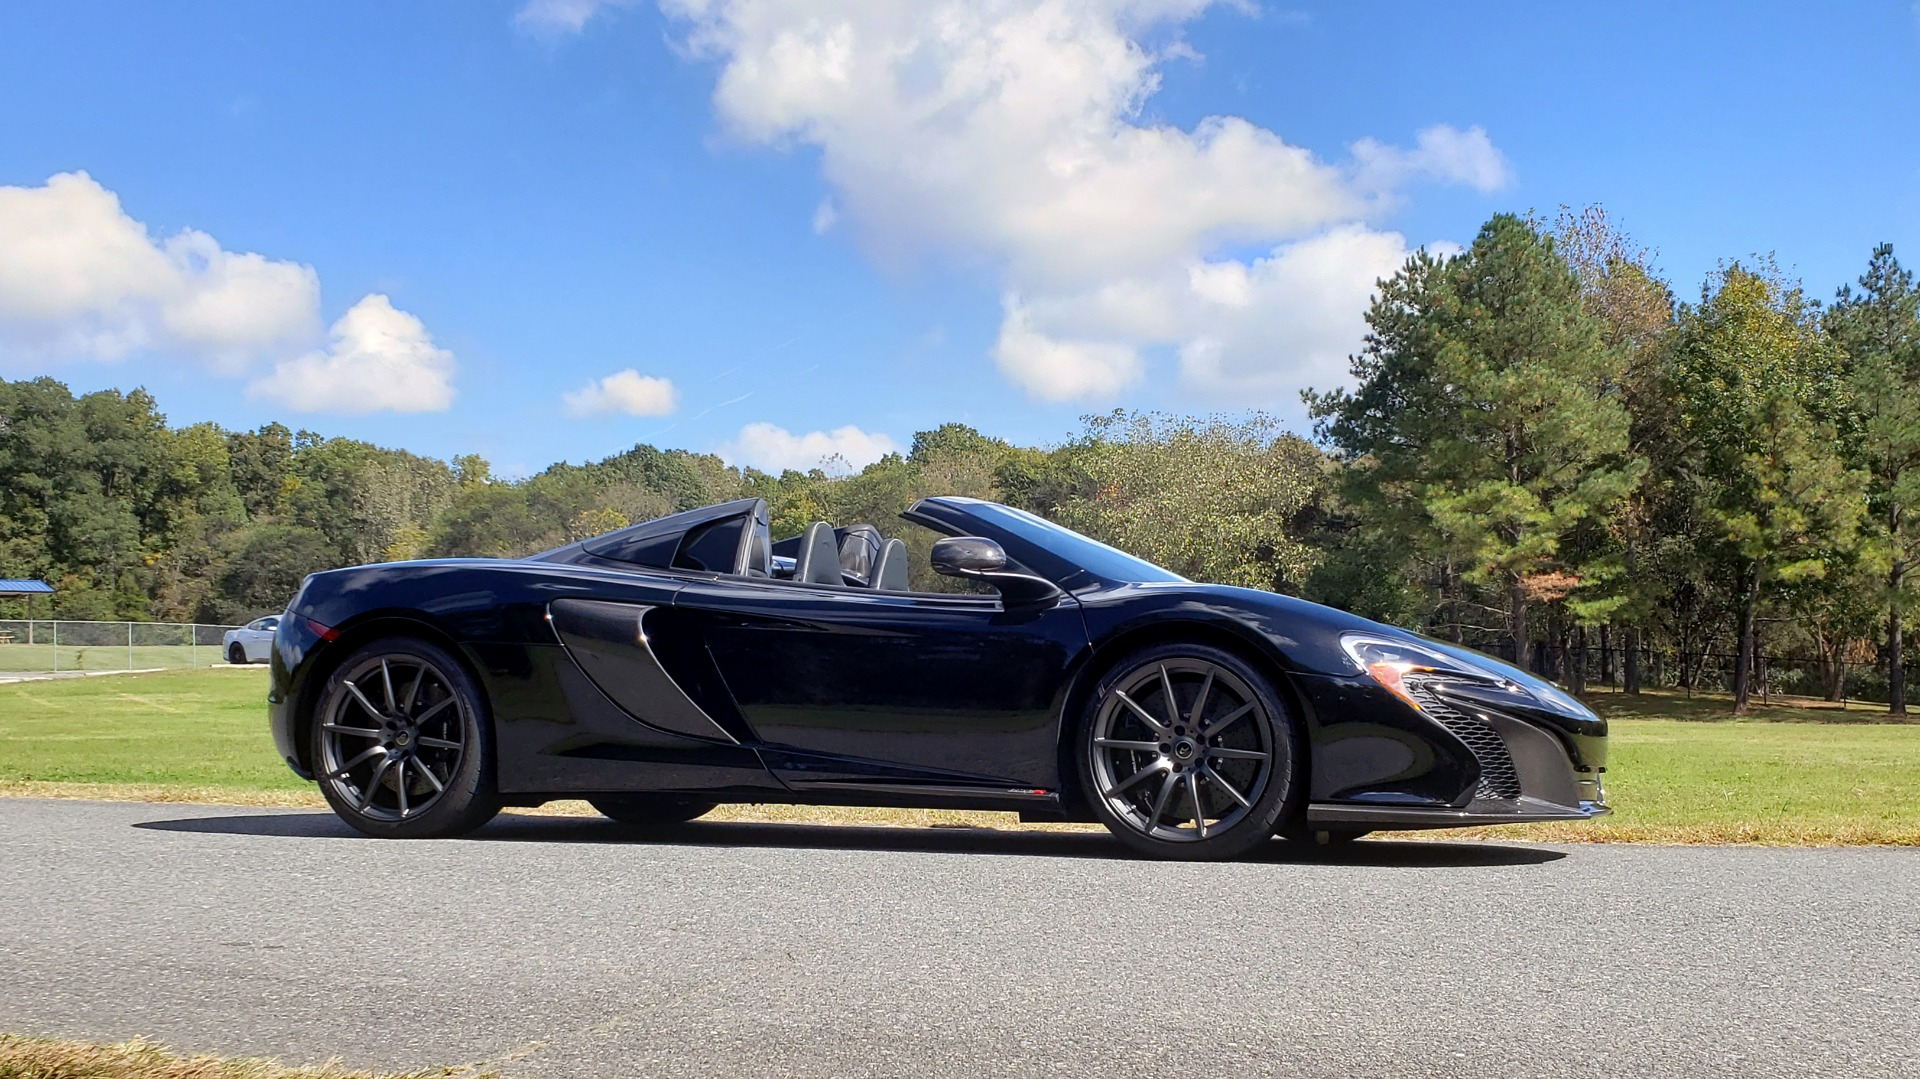 Used 2016 McLaren 650S SPIDER / 641HP / PARK SENSORS / LOW MILES / 1-OWNER for sale Sold at Formula Imports in Charlotte NC 28227 16